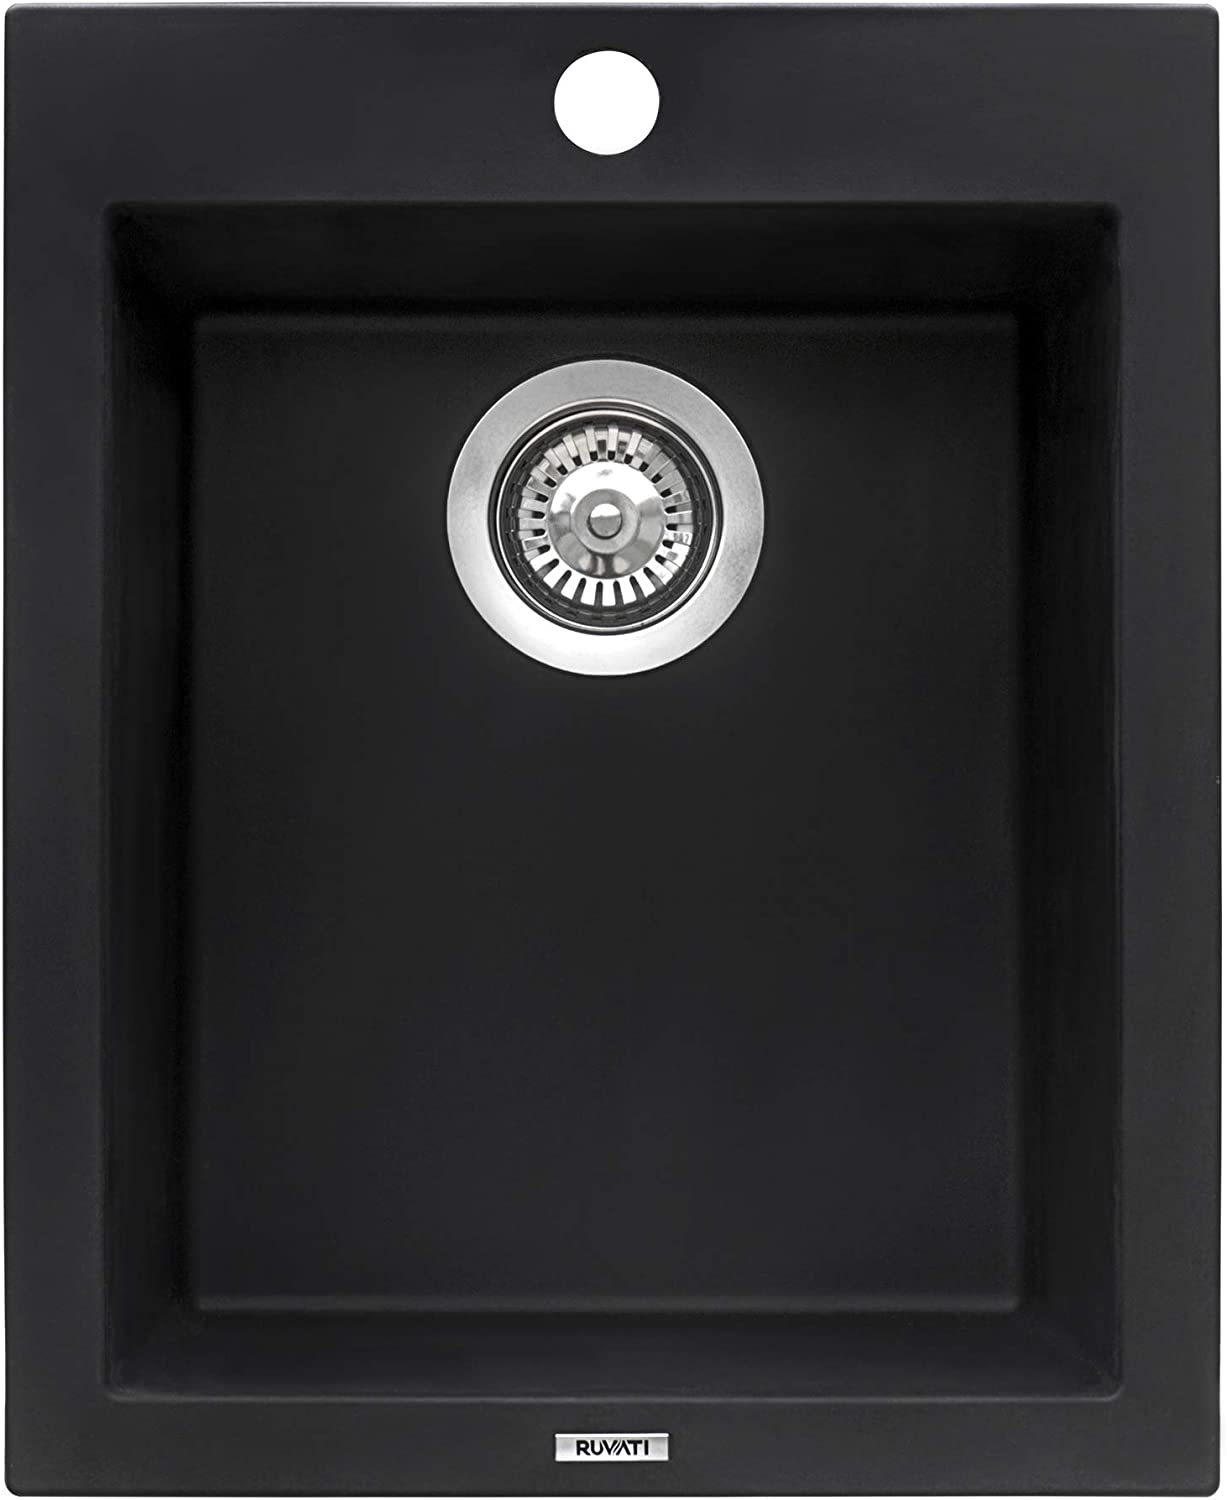 Ruvati 16 x 20 inch epiGranite Dual-Mount Granite Composite Single Bowl Kitchen Sink – Midnight Black – RVG1016BK